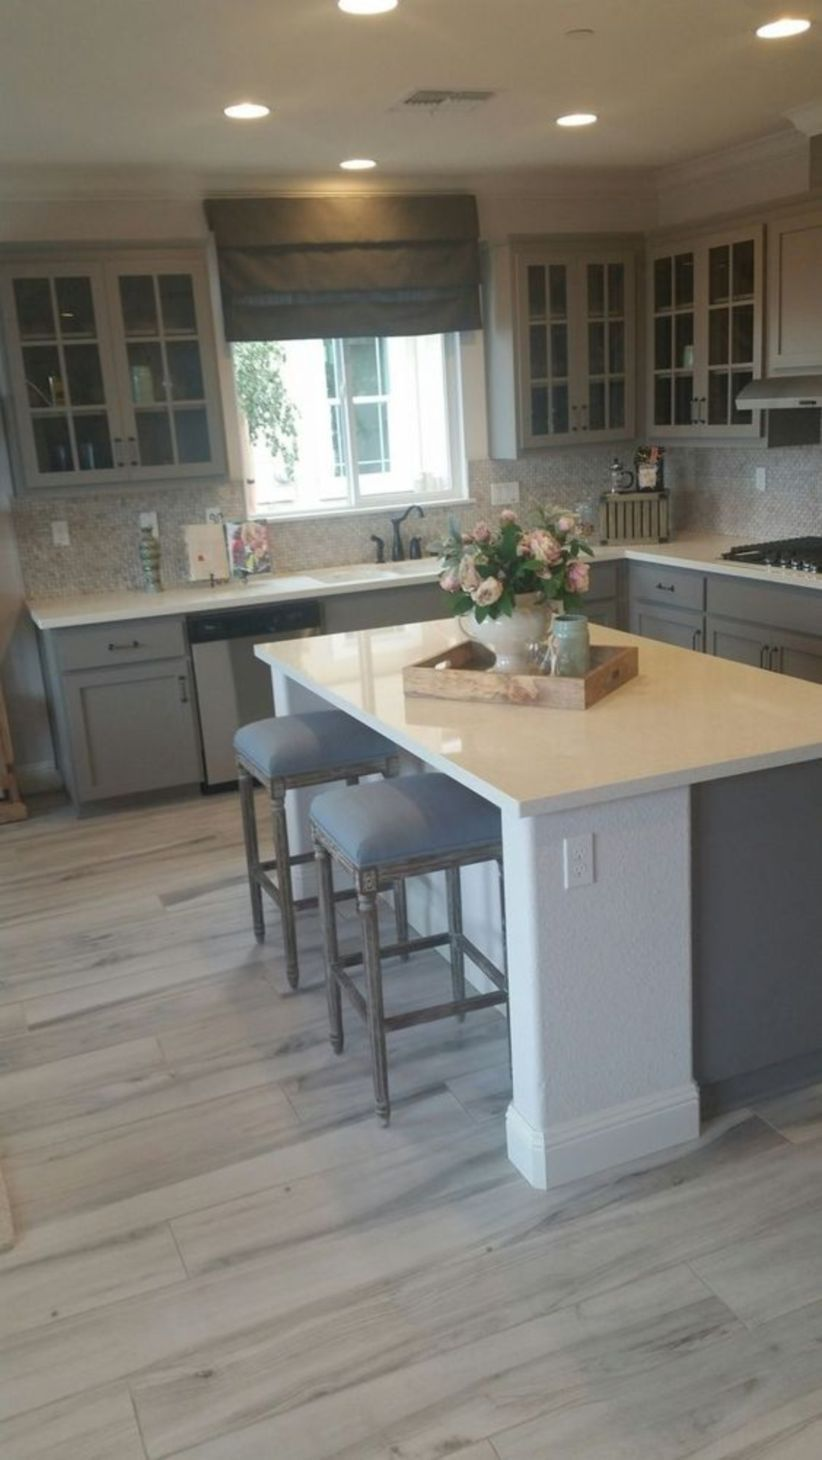 9 Lovely Tile Floor for Your Bathroom and Kitchen ~ Matchness.com ...